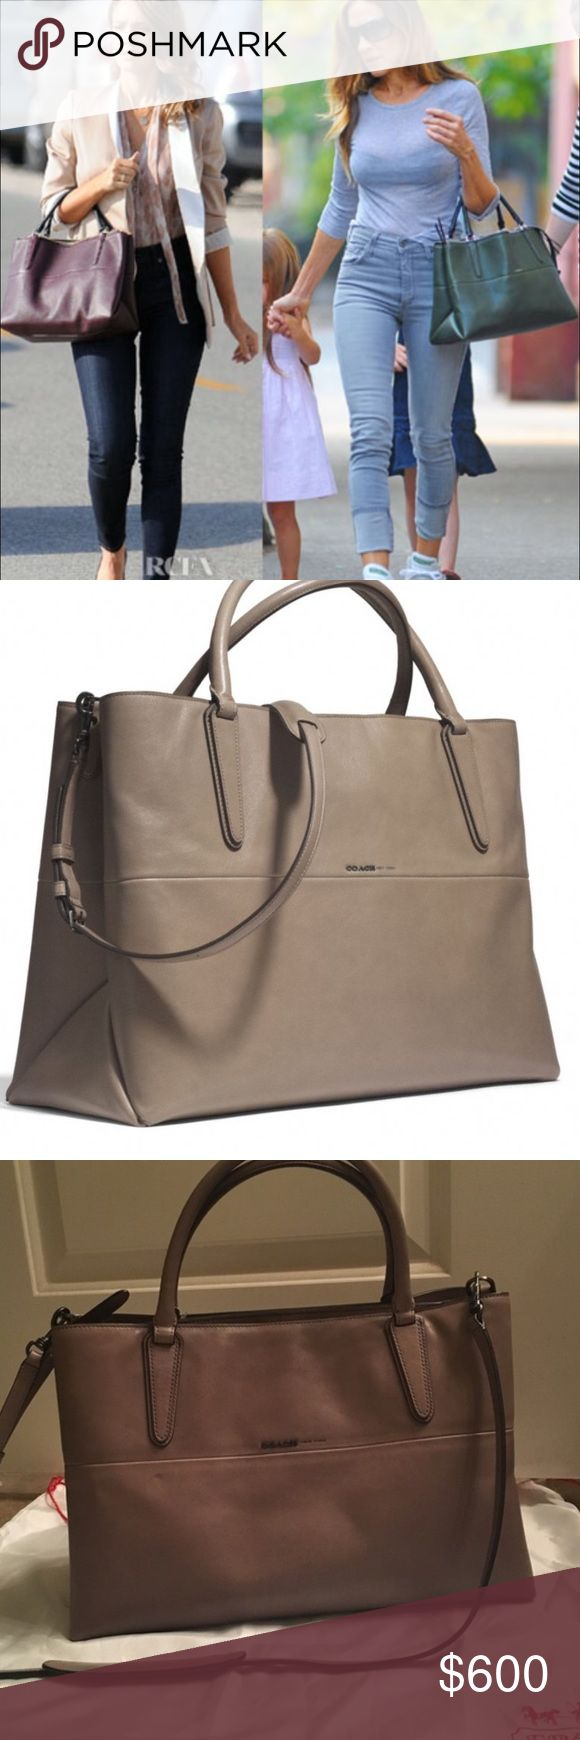 Coach Borough bag Much adored by celebrities the Coach Borough bag has classic Coach style and very versatile. Selling for $500 will reduce price to allow for reduced shipping if available Coach Bags